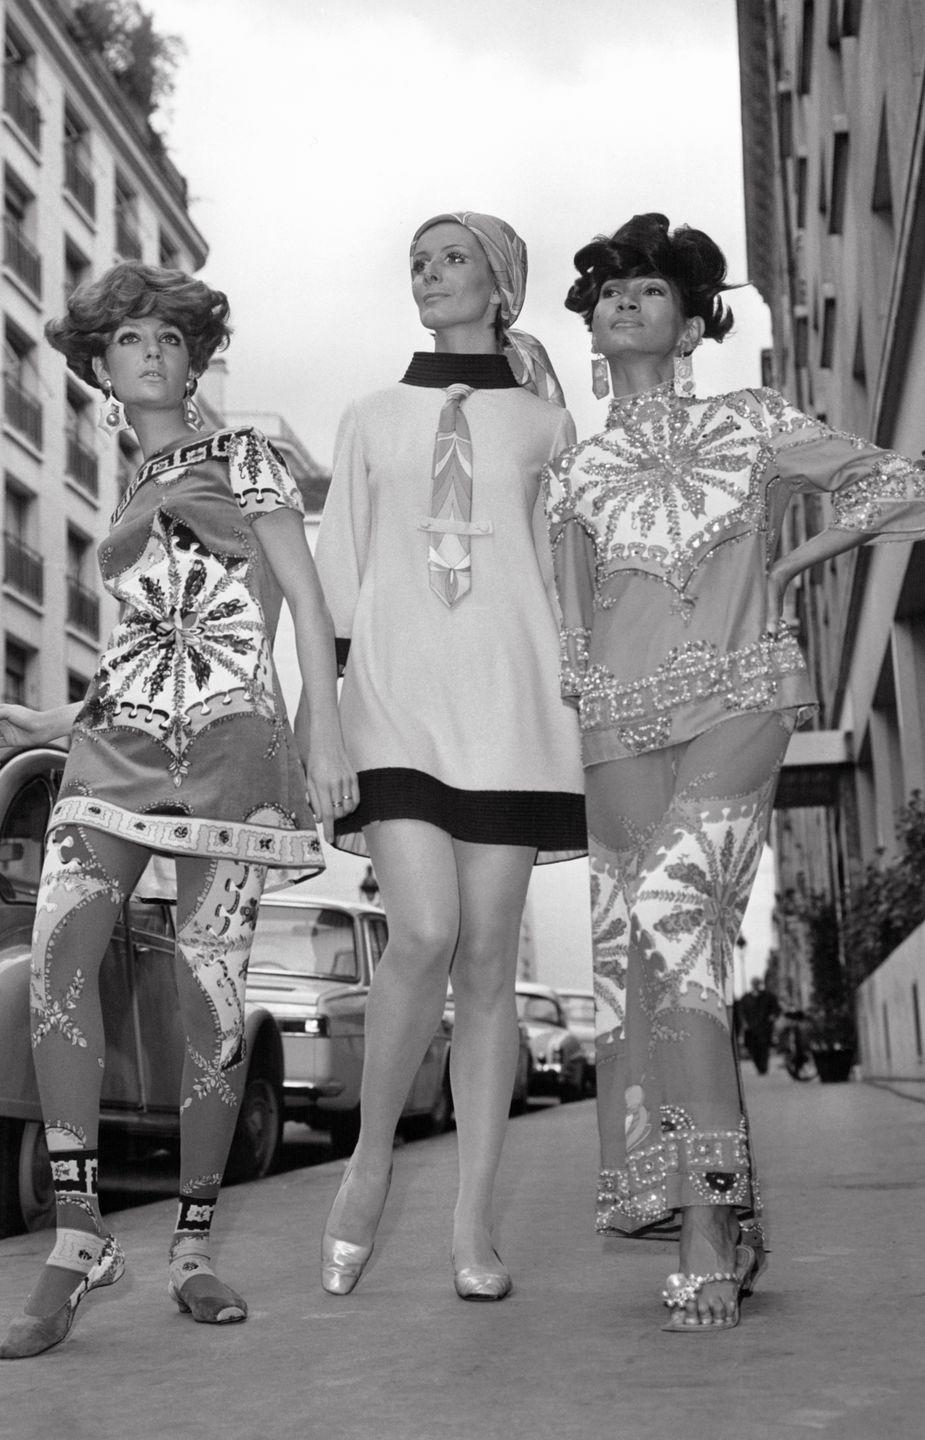 <p>Emilio Pucci embraced the mod and hippie trends of the decade with his fall line. Goodbye plaid, hello prints.</p>